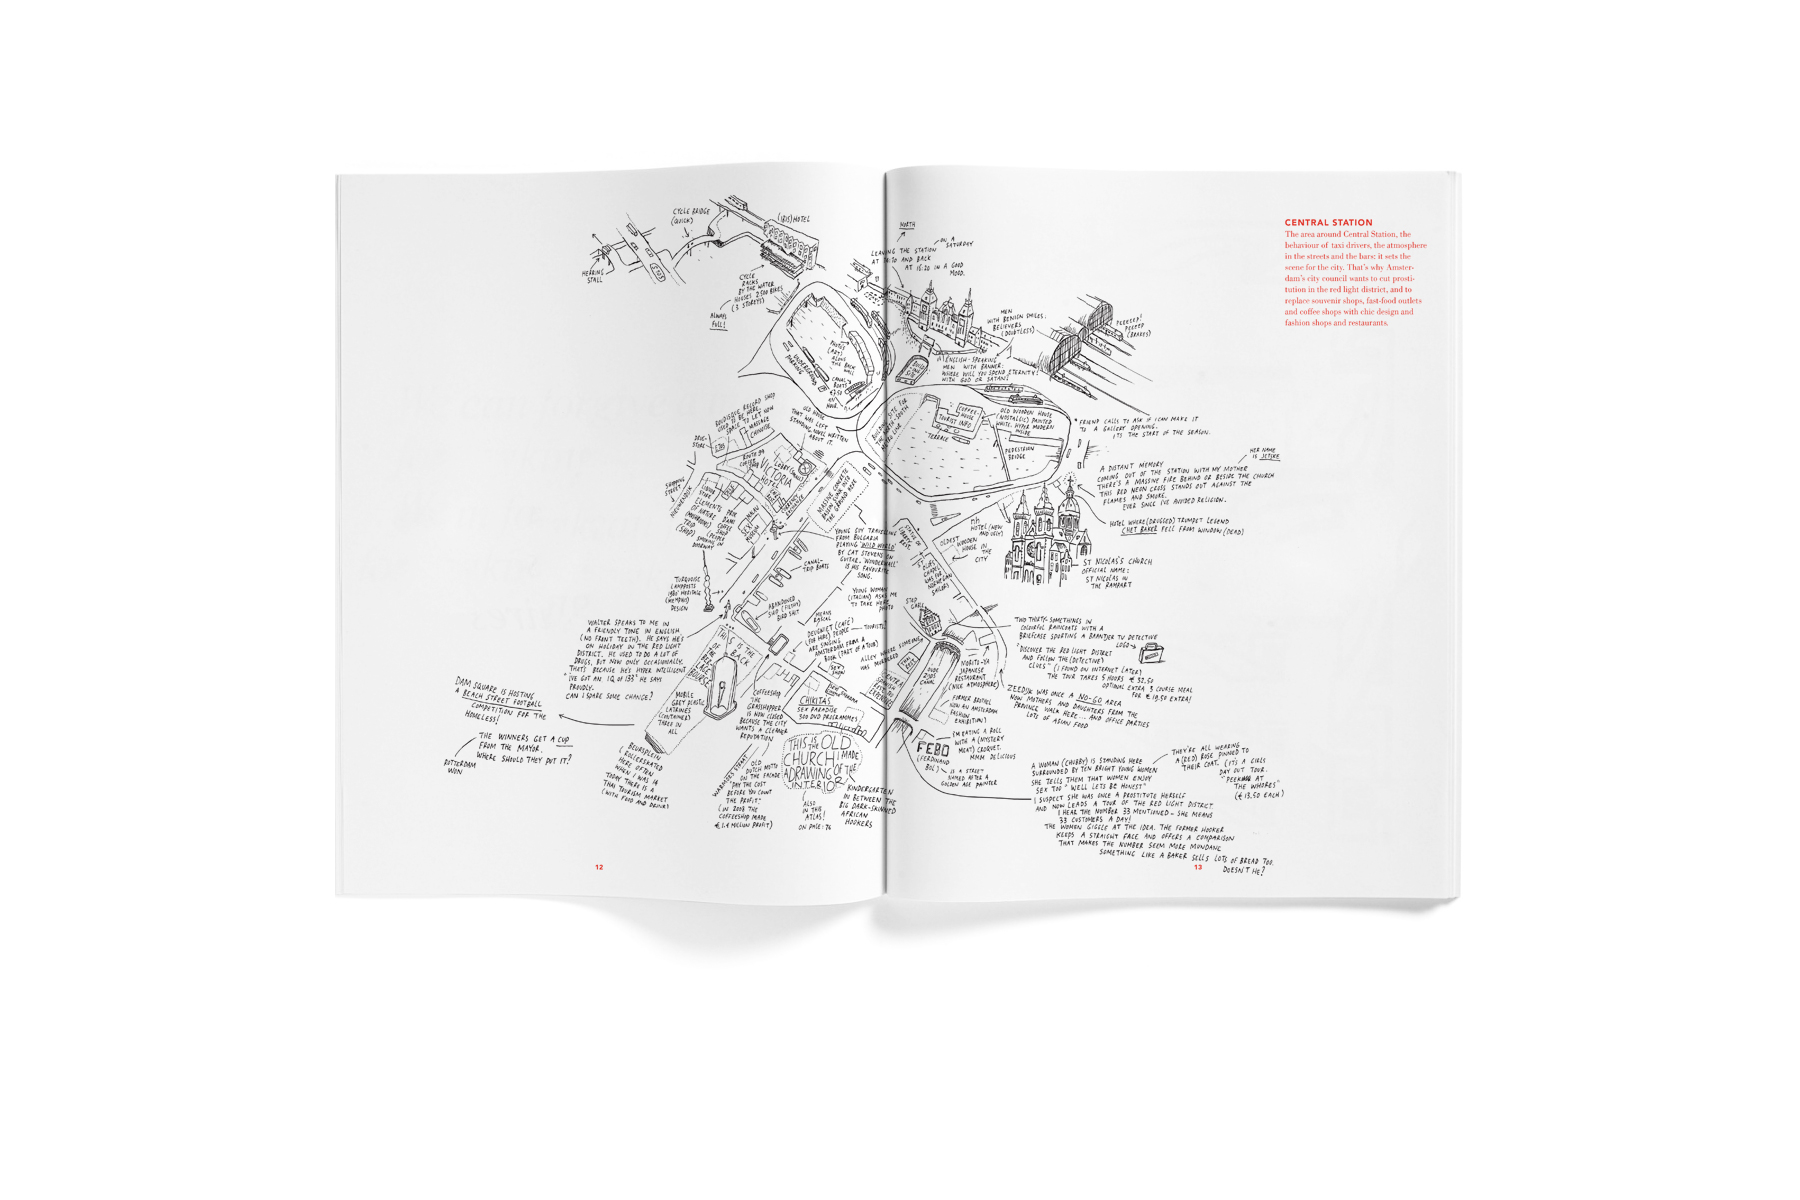 JAN ROTHUIZEN-The Soft Atlas of Amsterdam